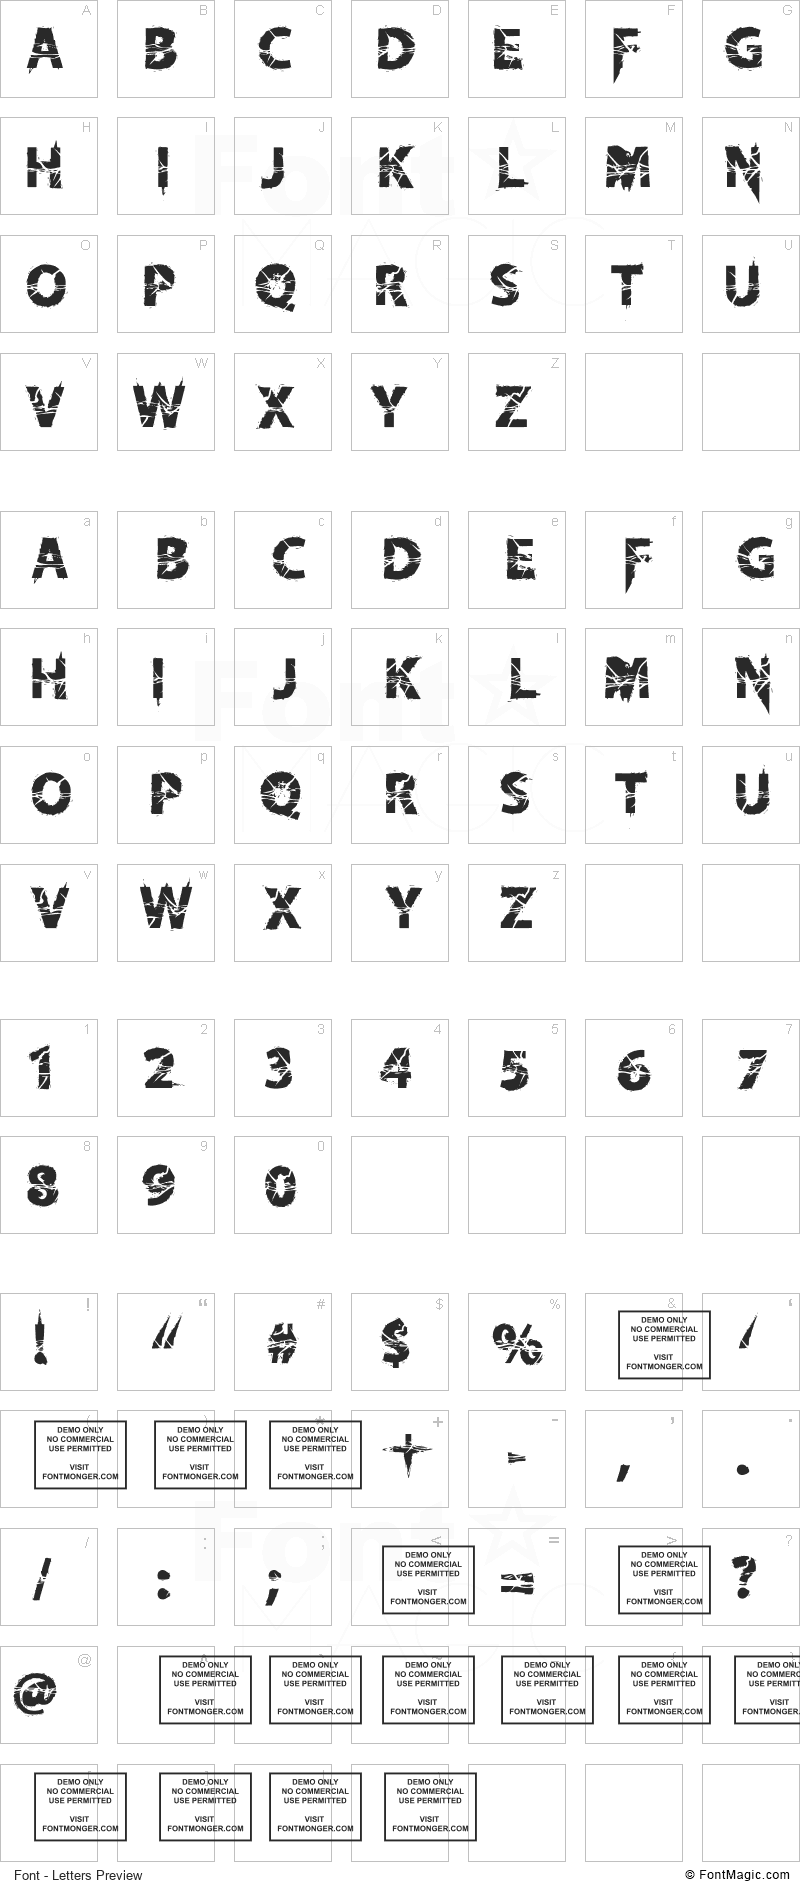 Knife Fight Ballet Font - All Latters Preview Chart